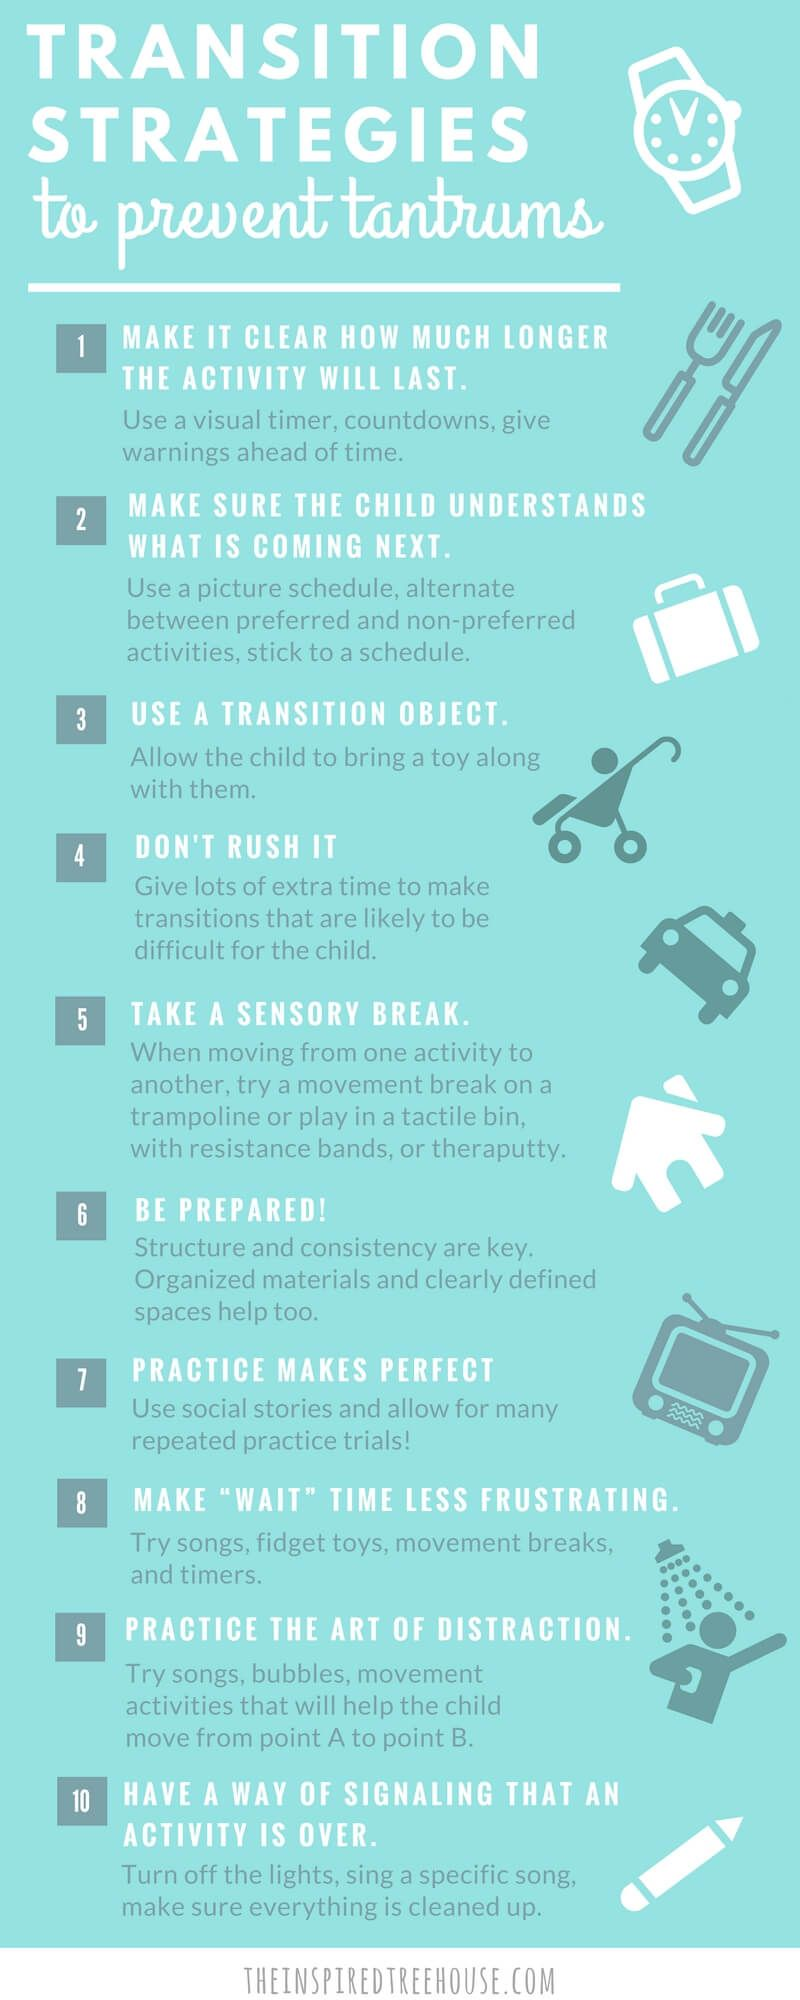 10 Calming Techniques and Transition Strategies for Kids